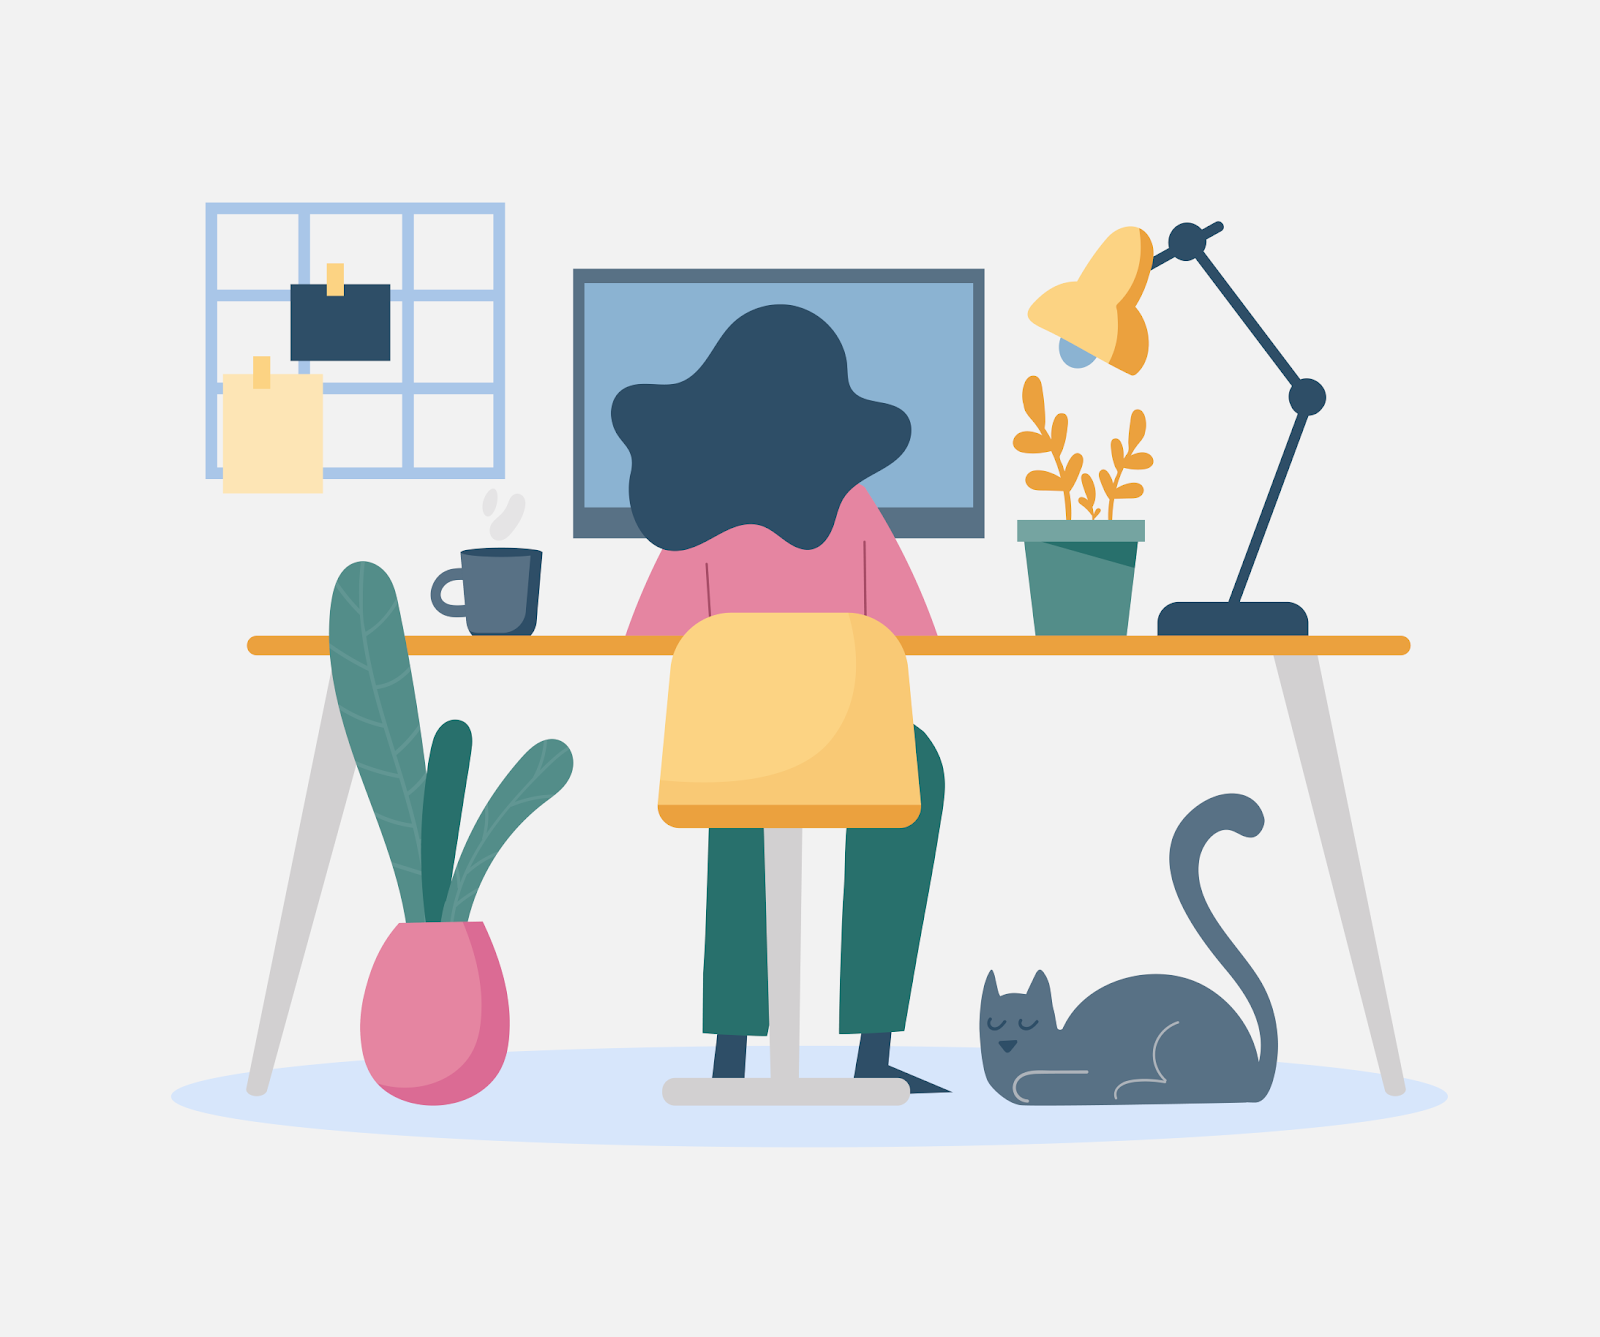 A graphic illustration of a woman working at a desk with a computer, lamp, coffee cup, and plant. The woman faces away from the picture towards the computer and has long dark hair and wears a pink sweater and green pants and next to her on the floor is a gray cat.